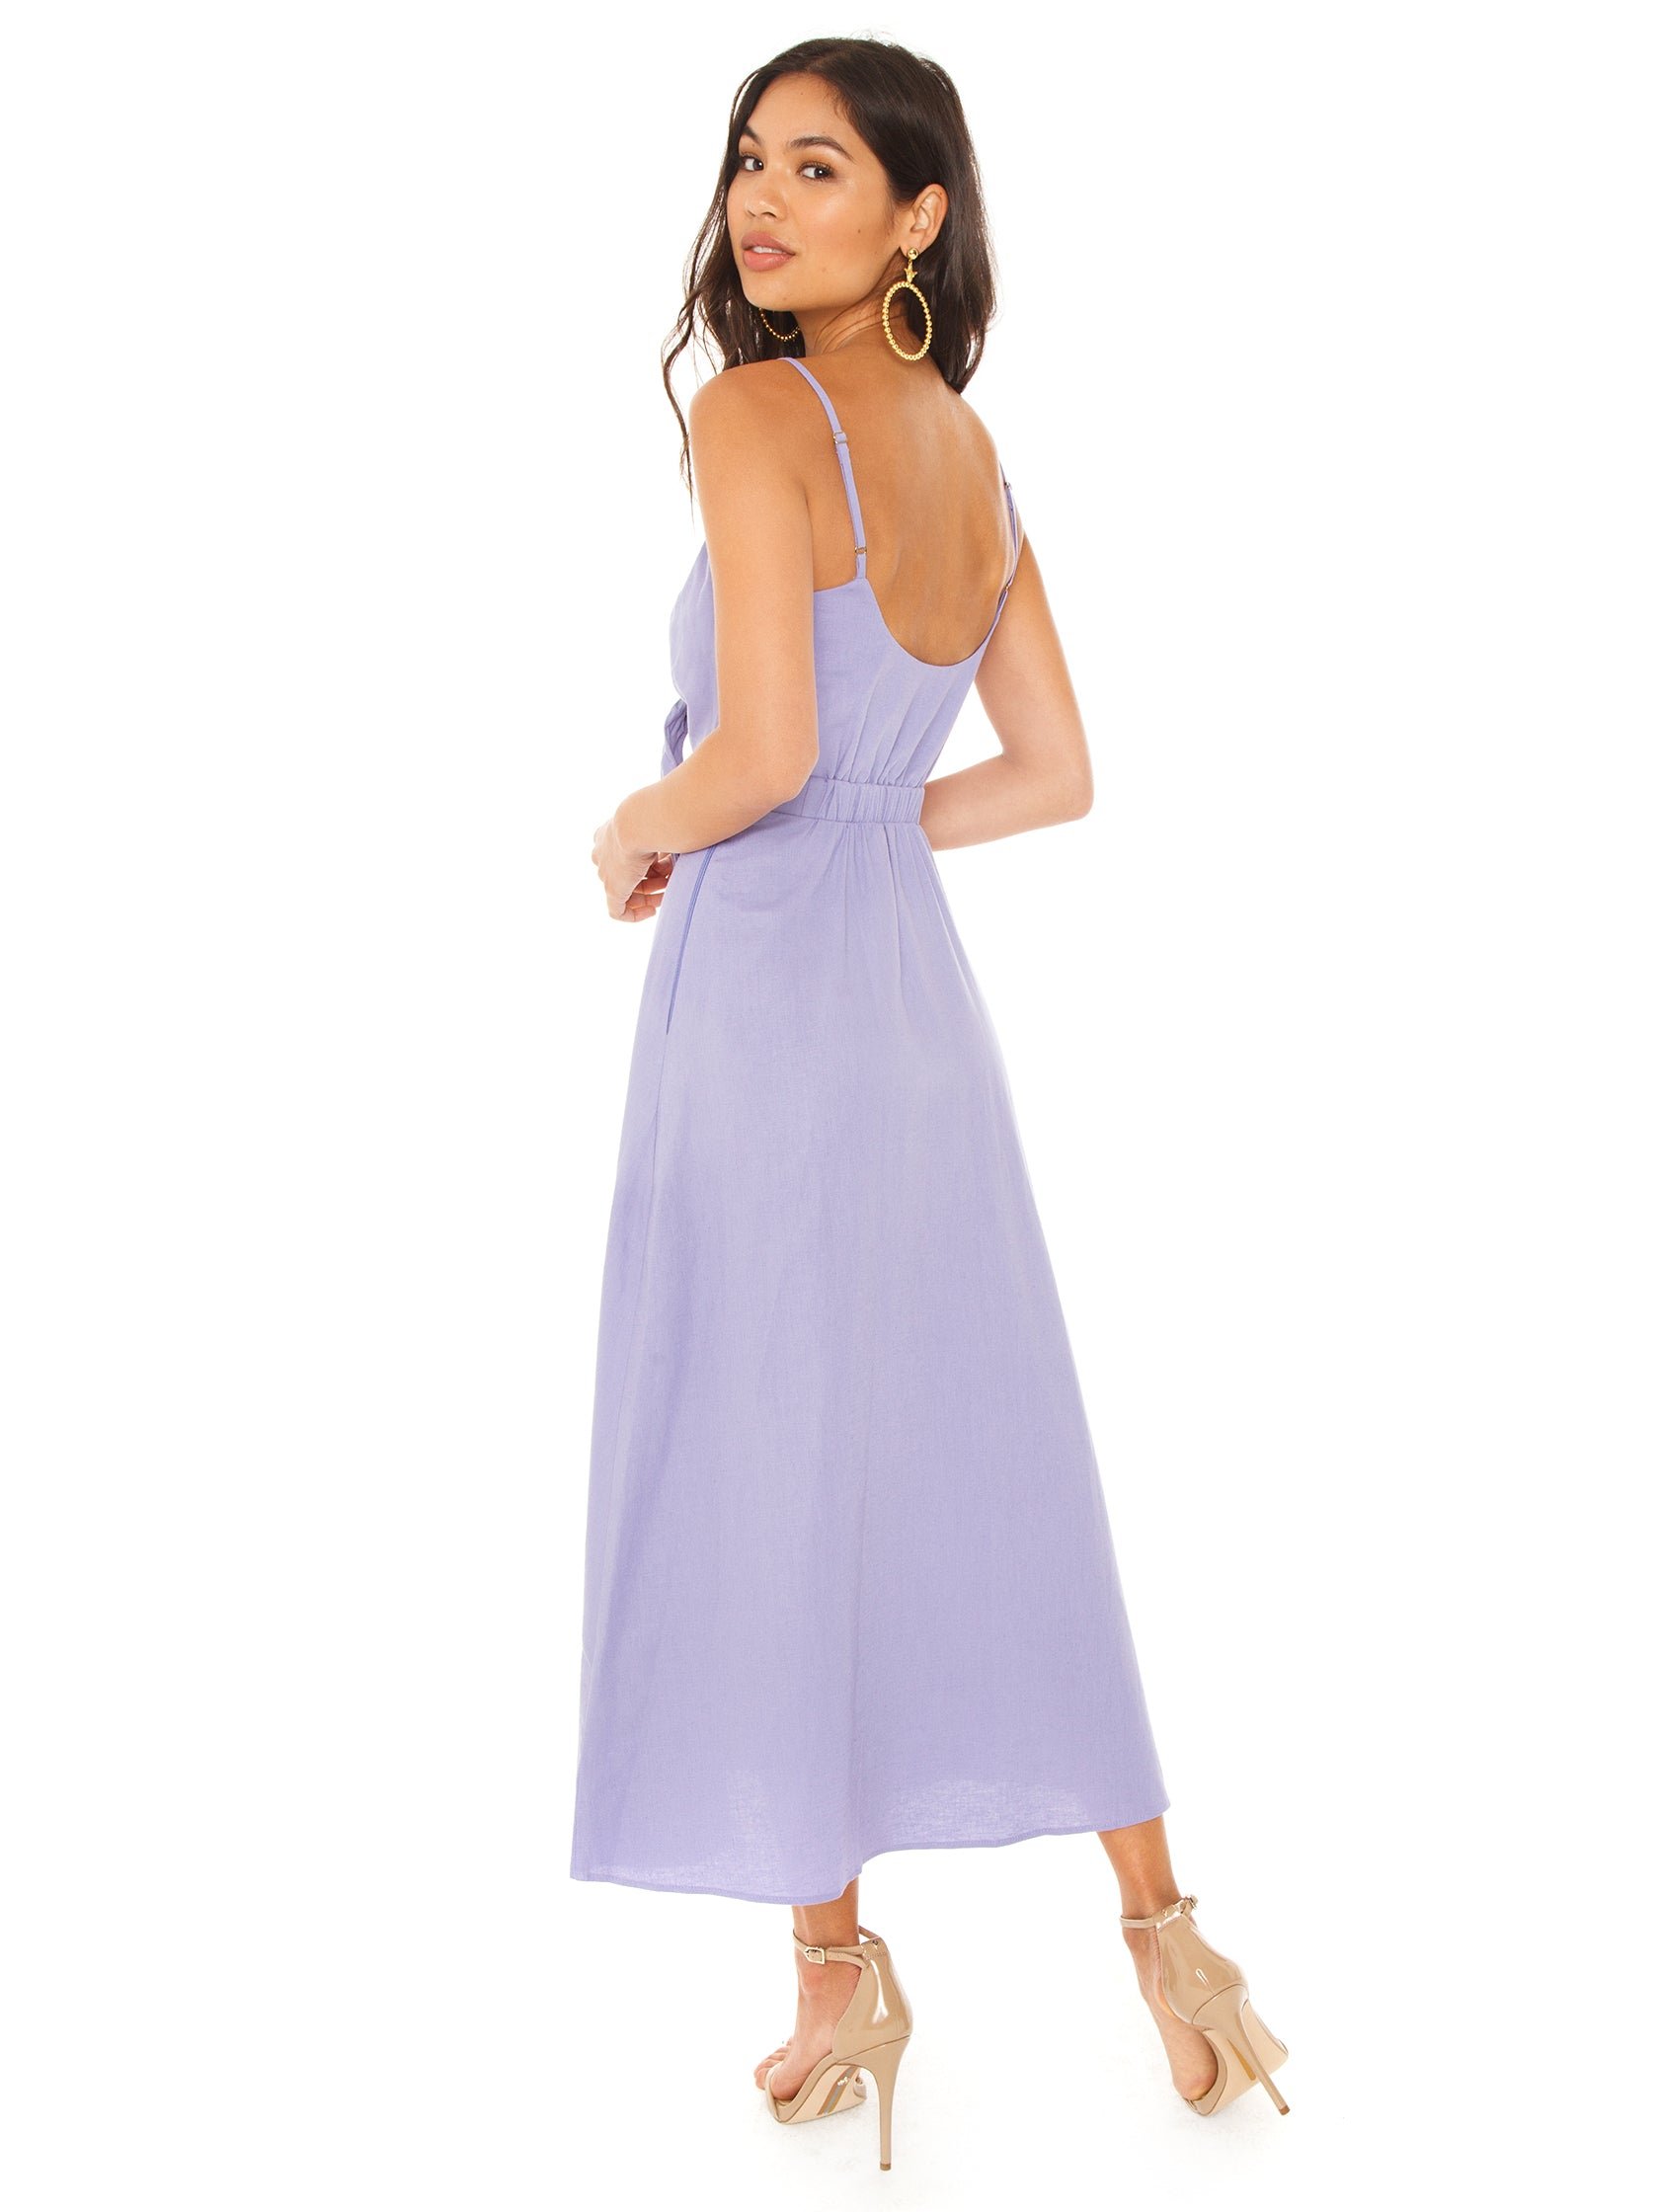 Women wearing a dress rental from Show Me Your Mumu called Moby Tie Maxi